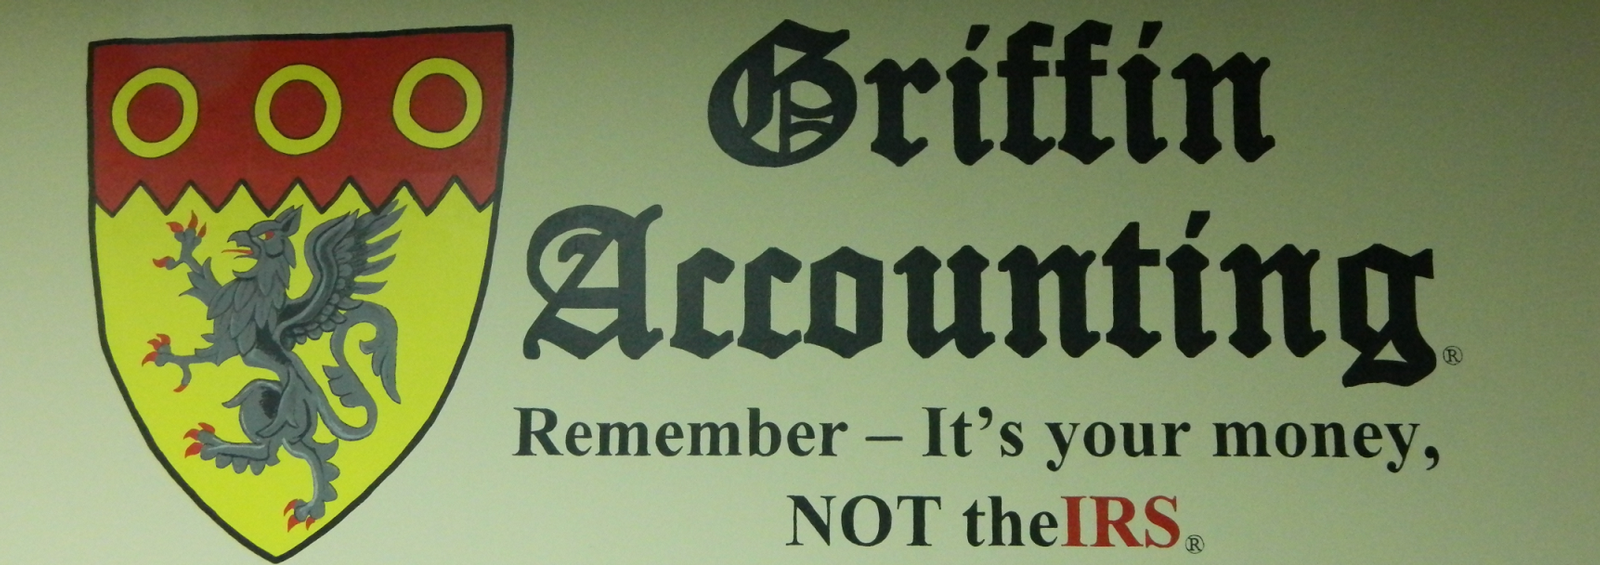 Griffin Accounting Remember  It's your money, NOT theIRS